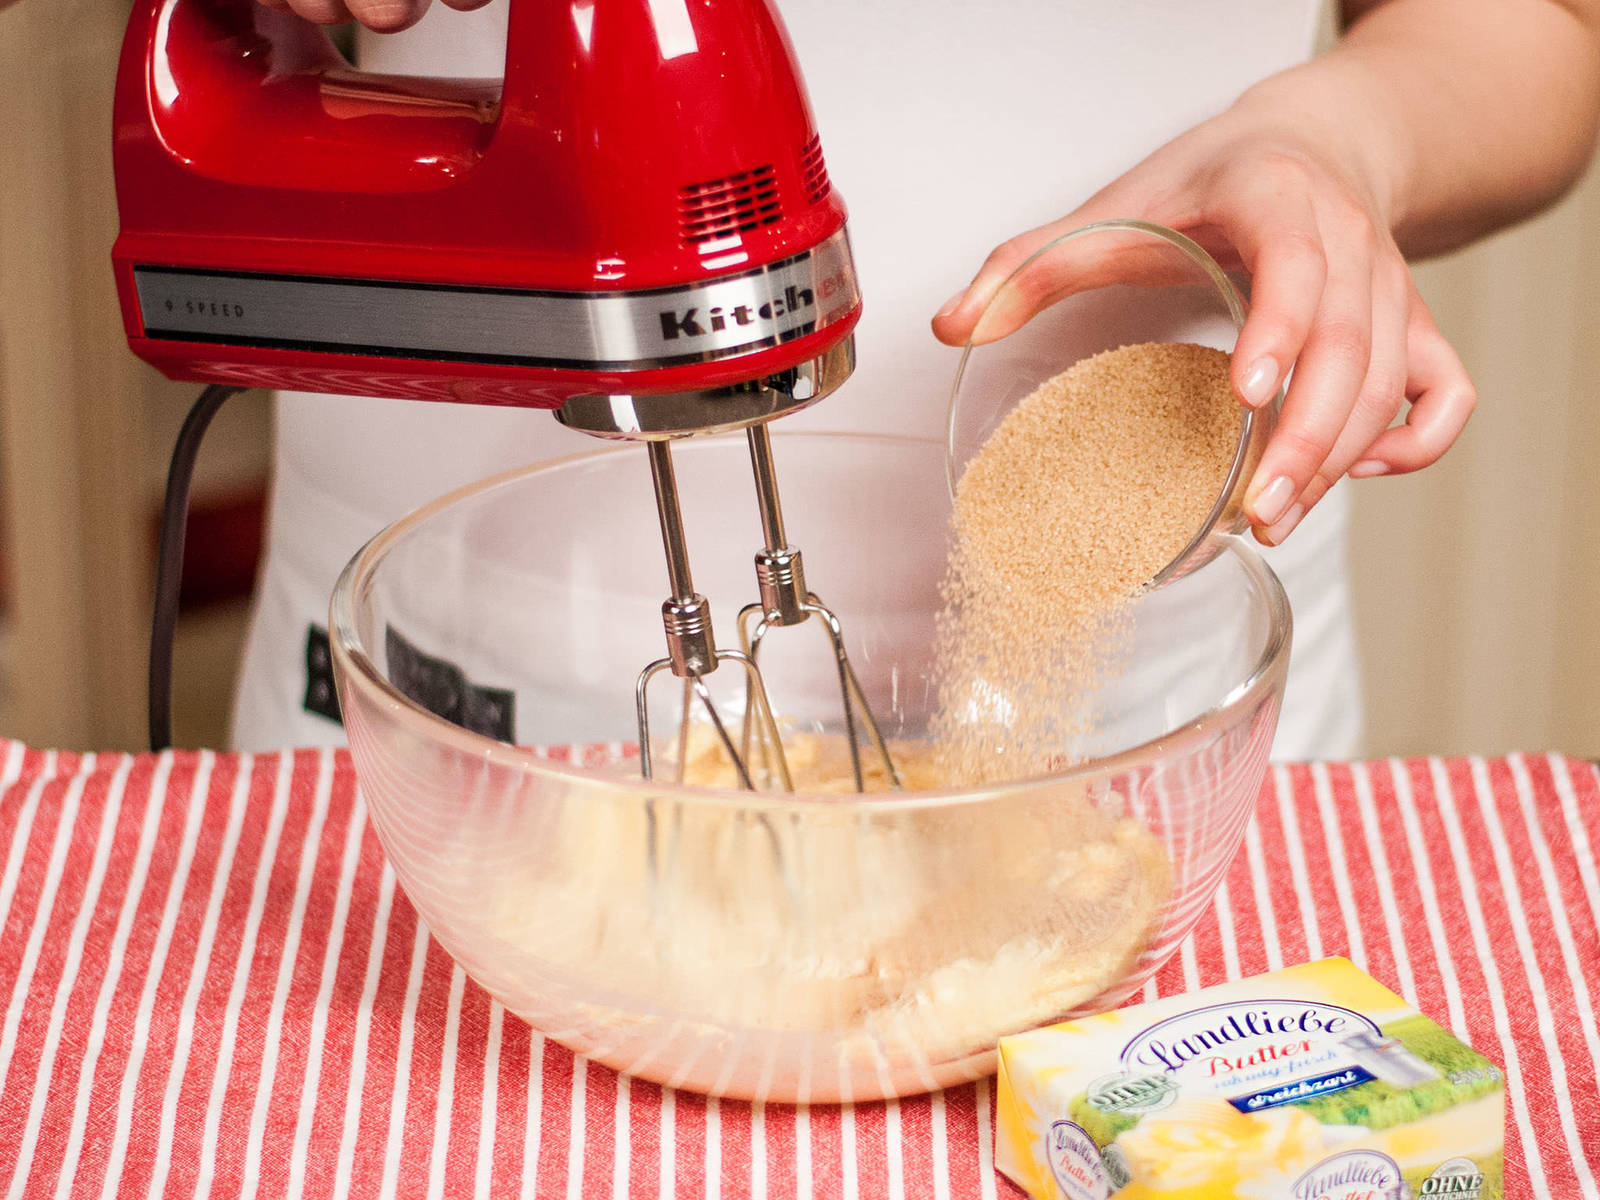 In another bowl, beat soft butter, brown sugar, and vanilla sugar until fluffy and pale.